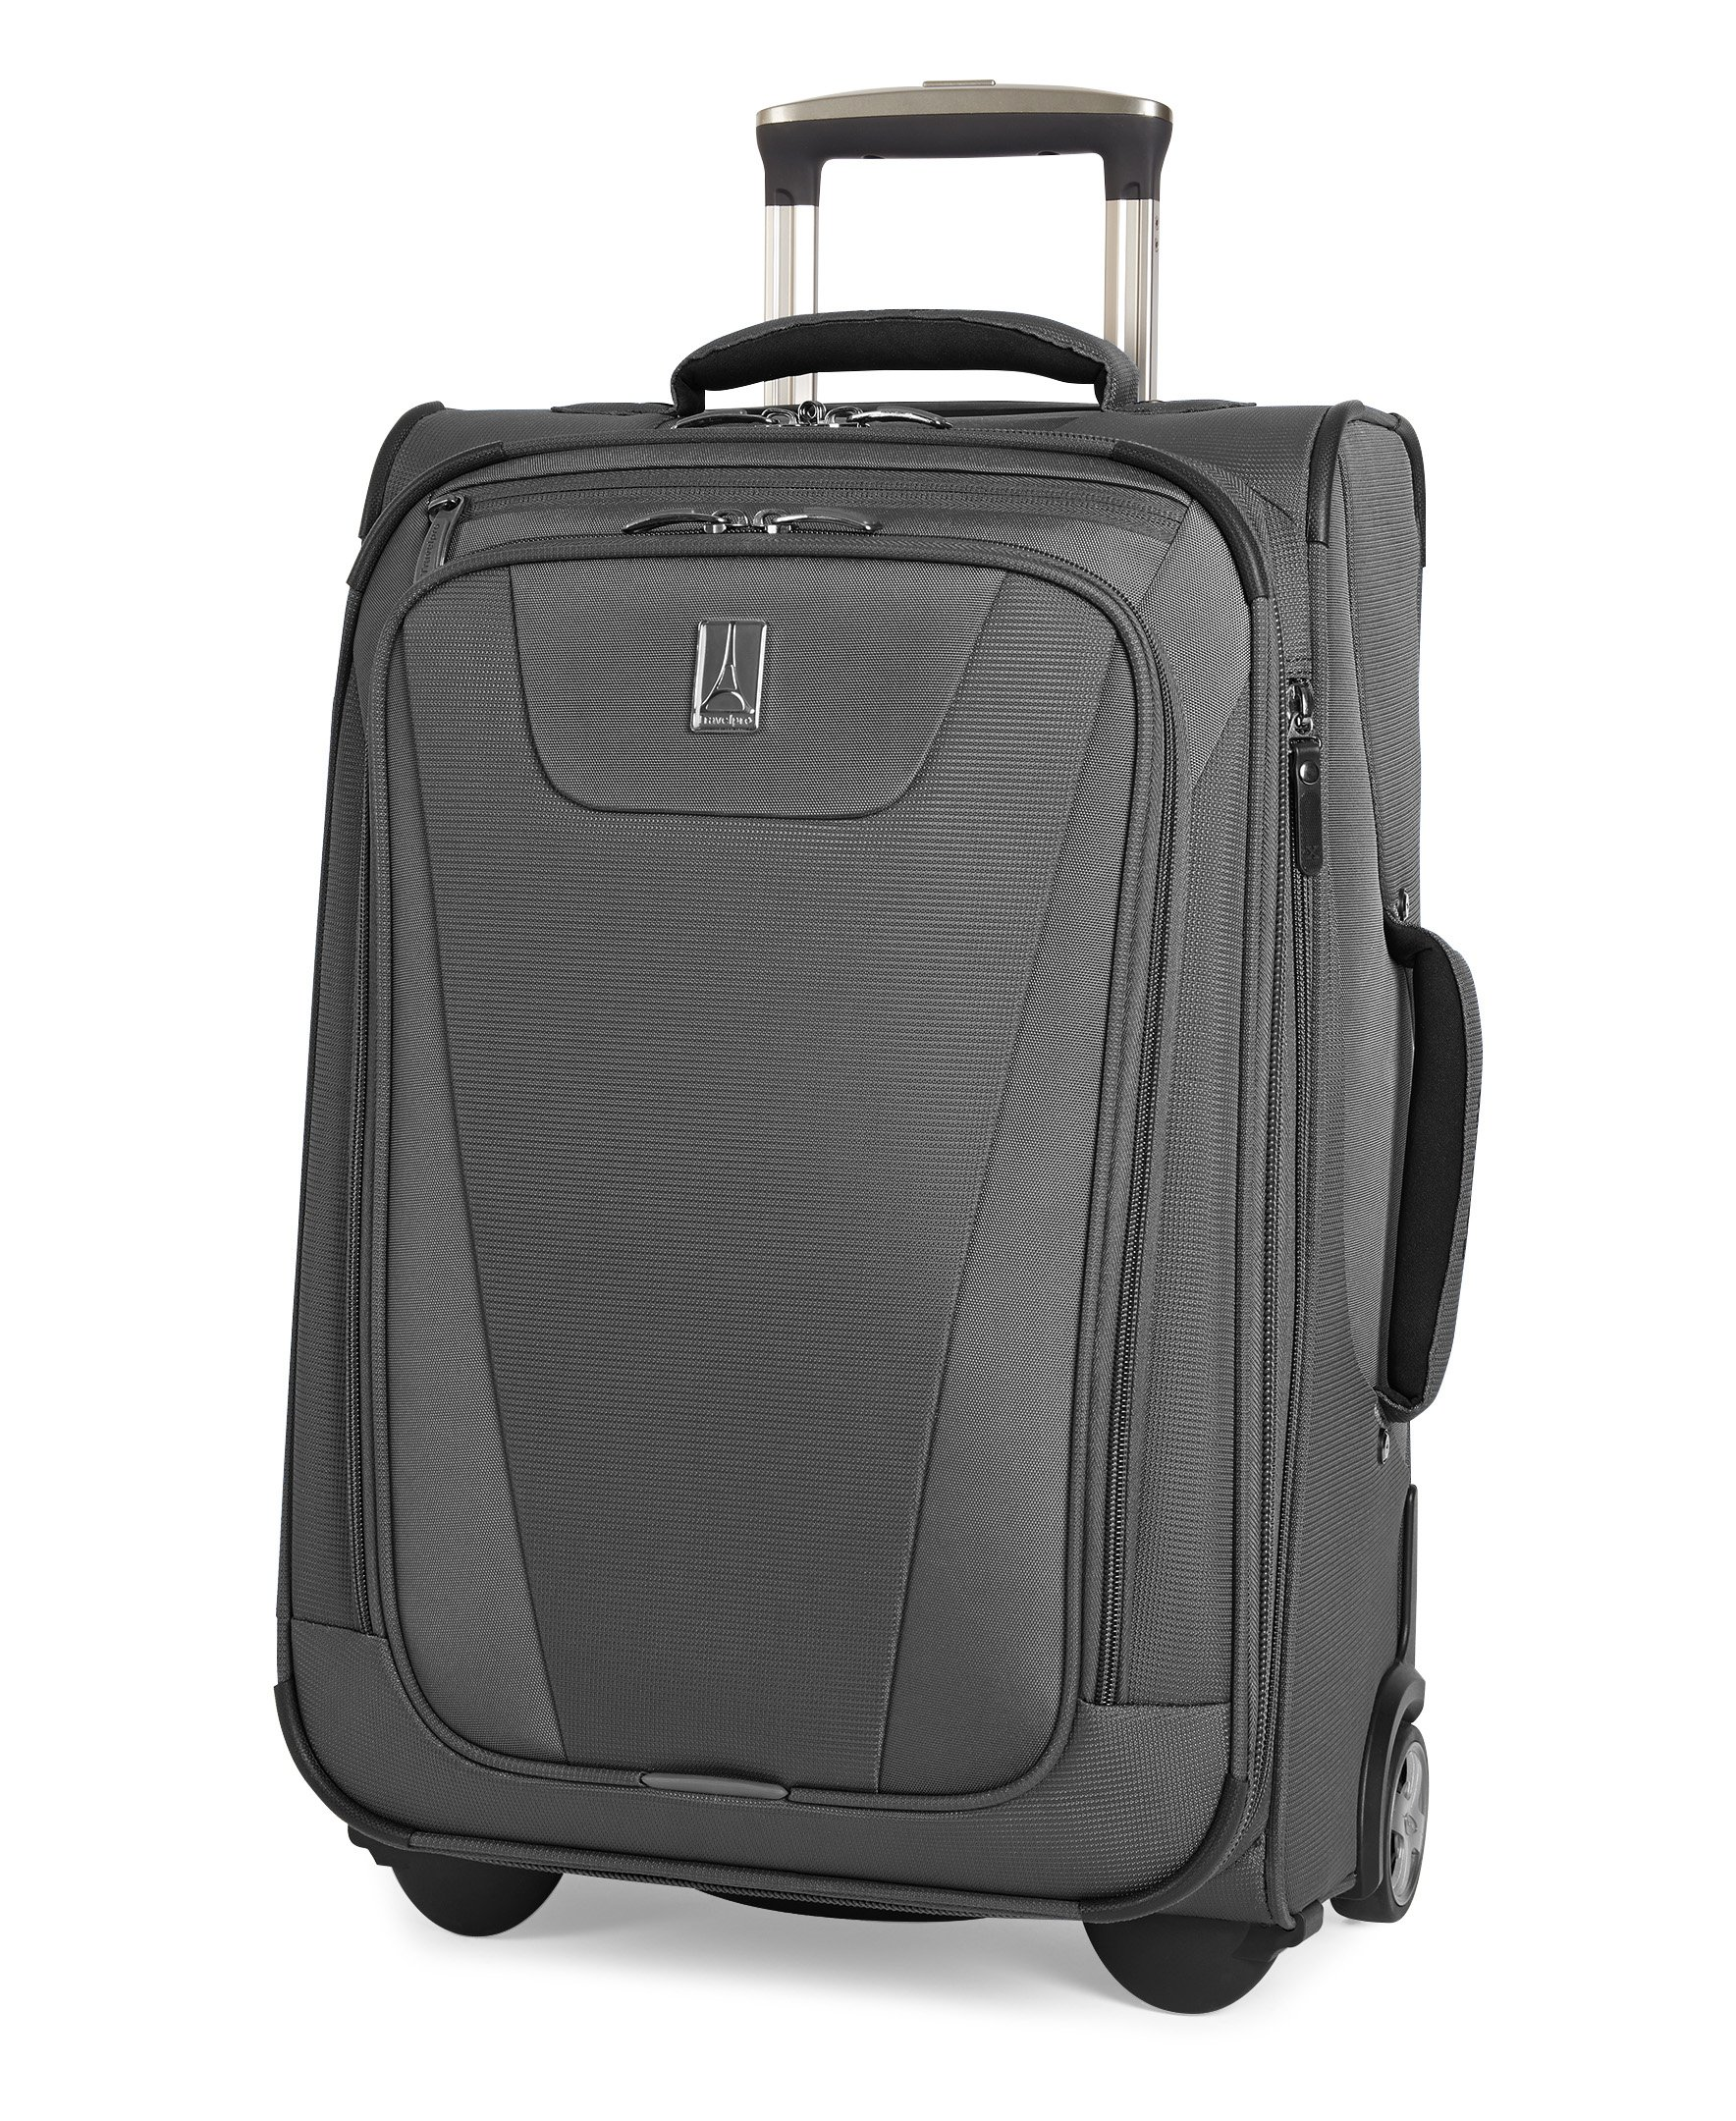 Travelpro Maxlite 4 22'' Expandable Rollaboard Suitcase, Grey by Travelpro